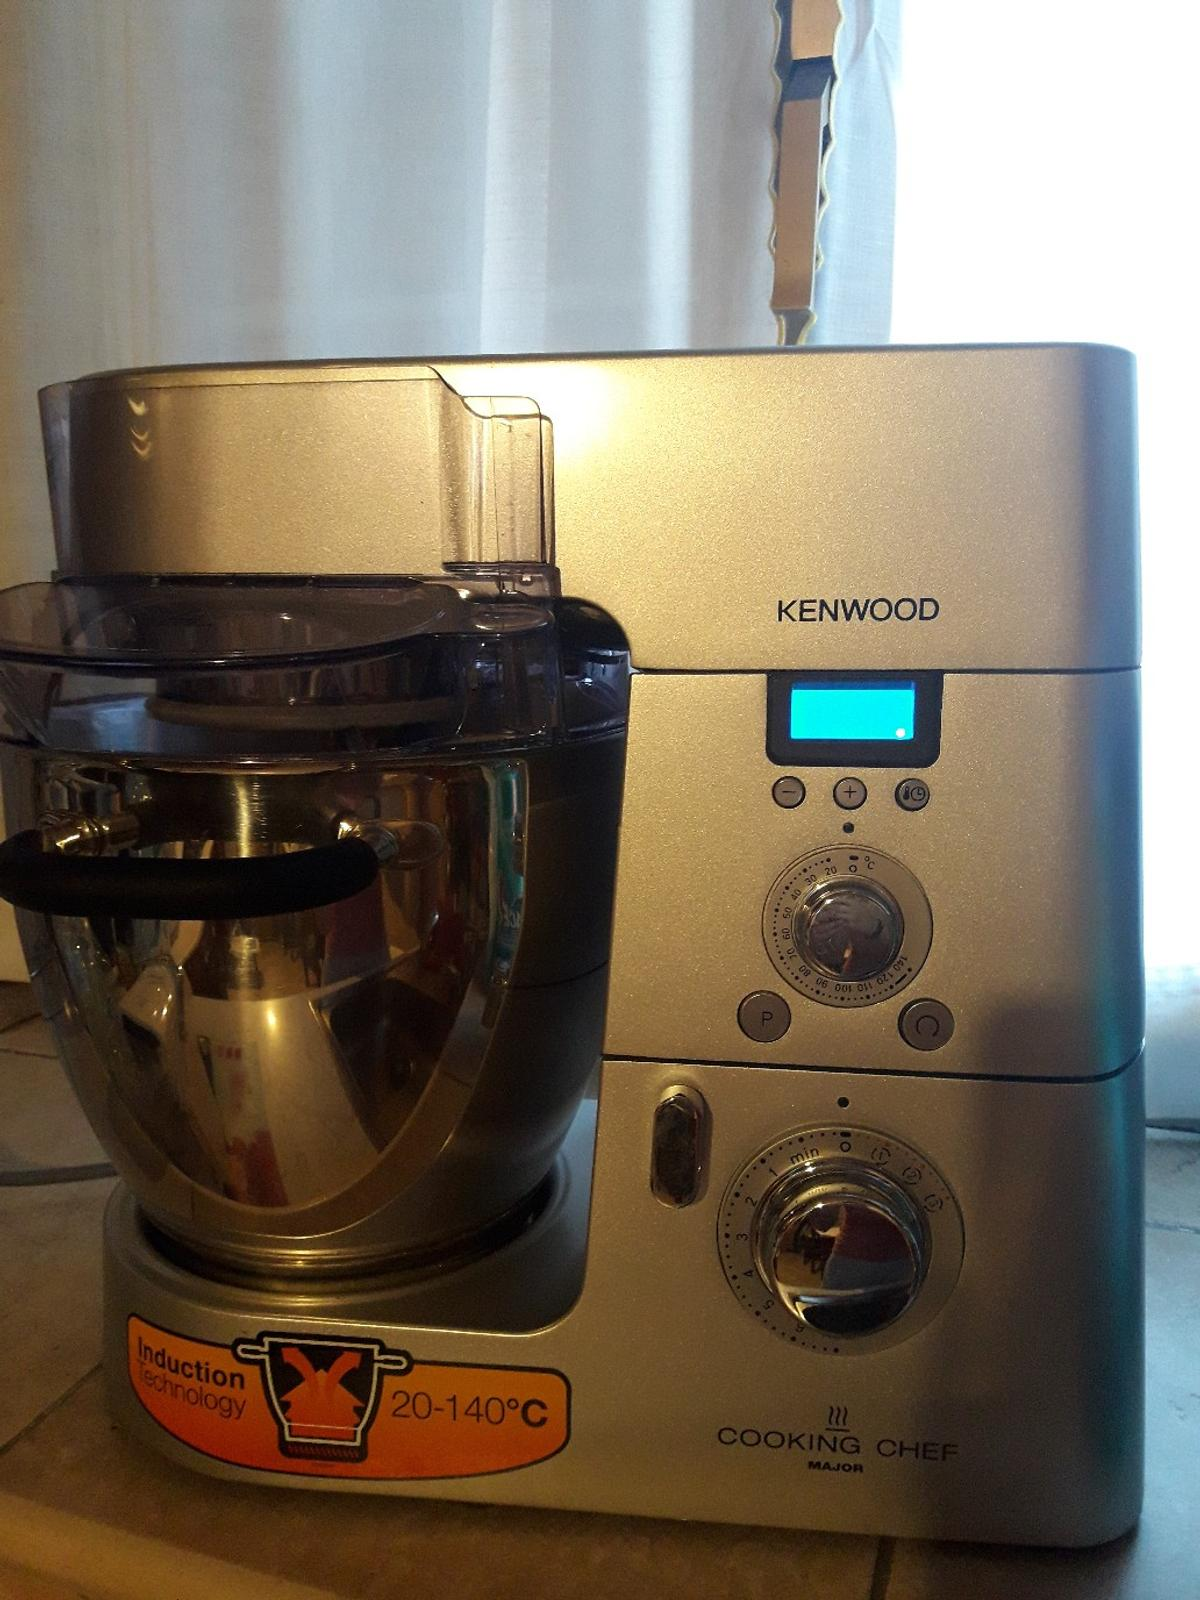 Kenwood cooking chef in Roma Roma für 500,00 € kaufen - Shpock